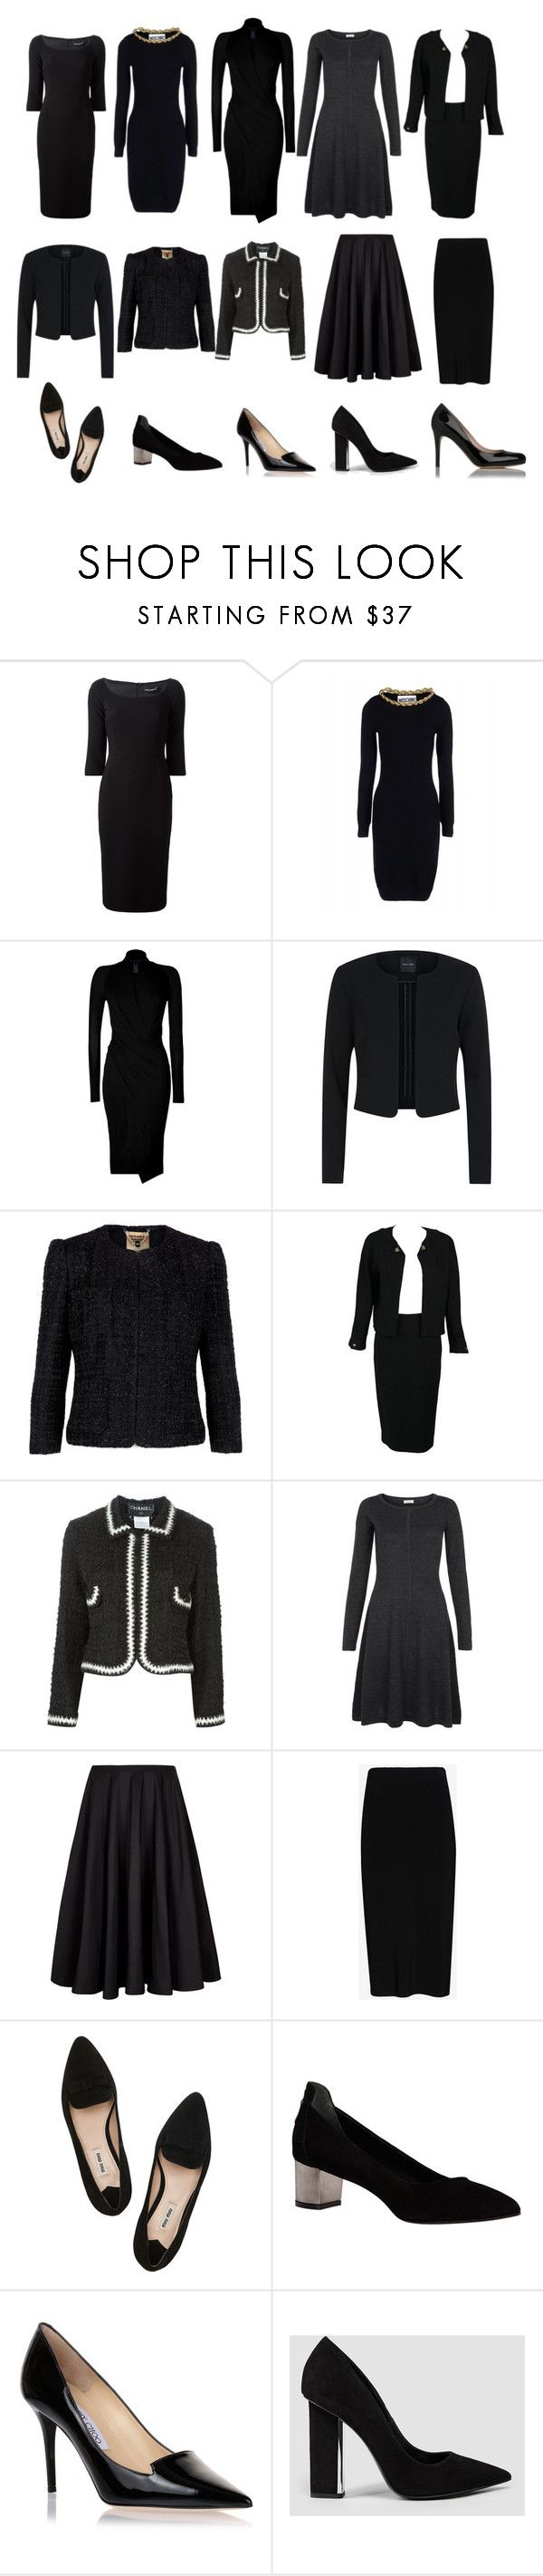 """""""Mellie Grant's Funeral Attire"""" by oliviapope411 ❤ liked on Polyvore featuring Dolce&Gabbana, Moschino, Donna Karan, Ted Baker, Chanel, Hobbs, rag & bone, Miu Miu, Comptoir Des Cotonniers and Jimmy Choo"""